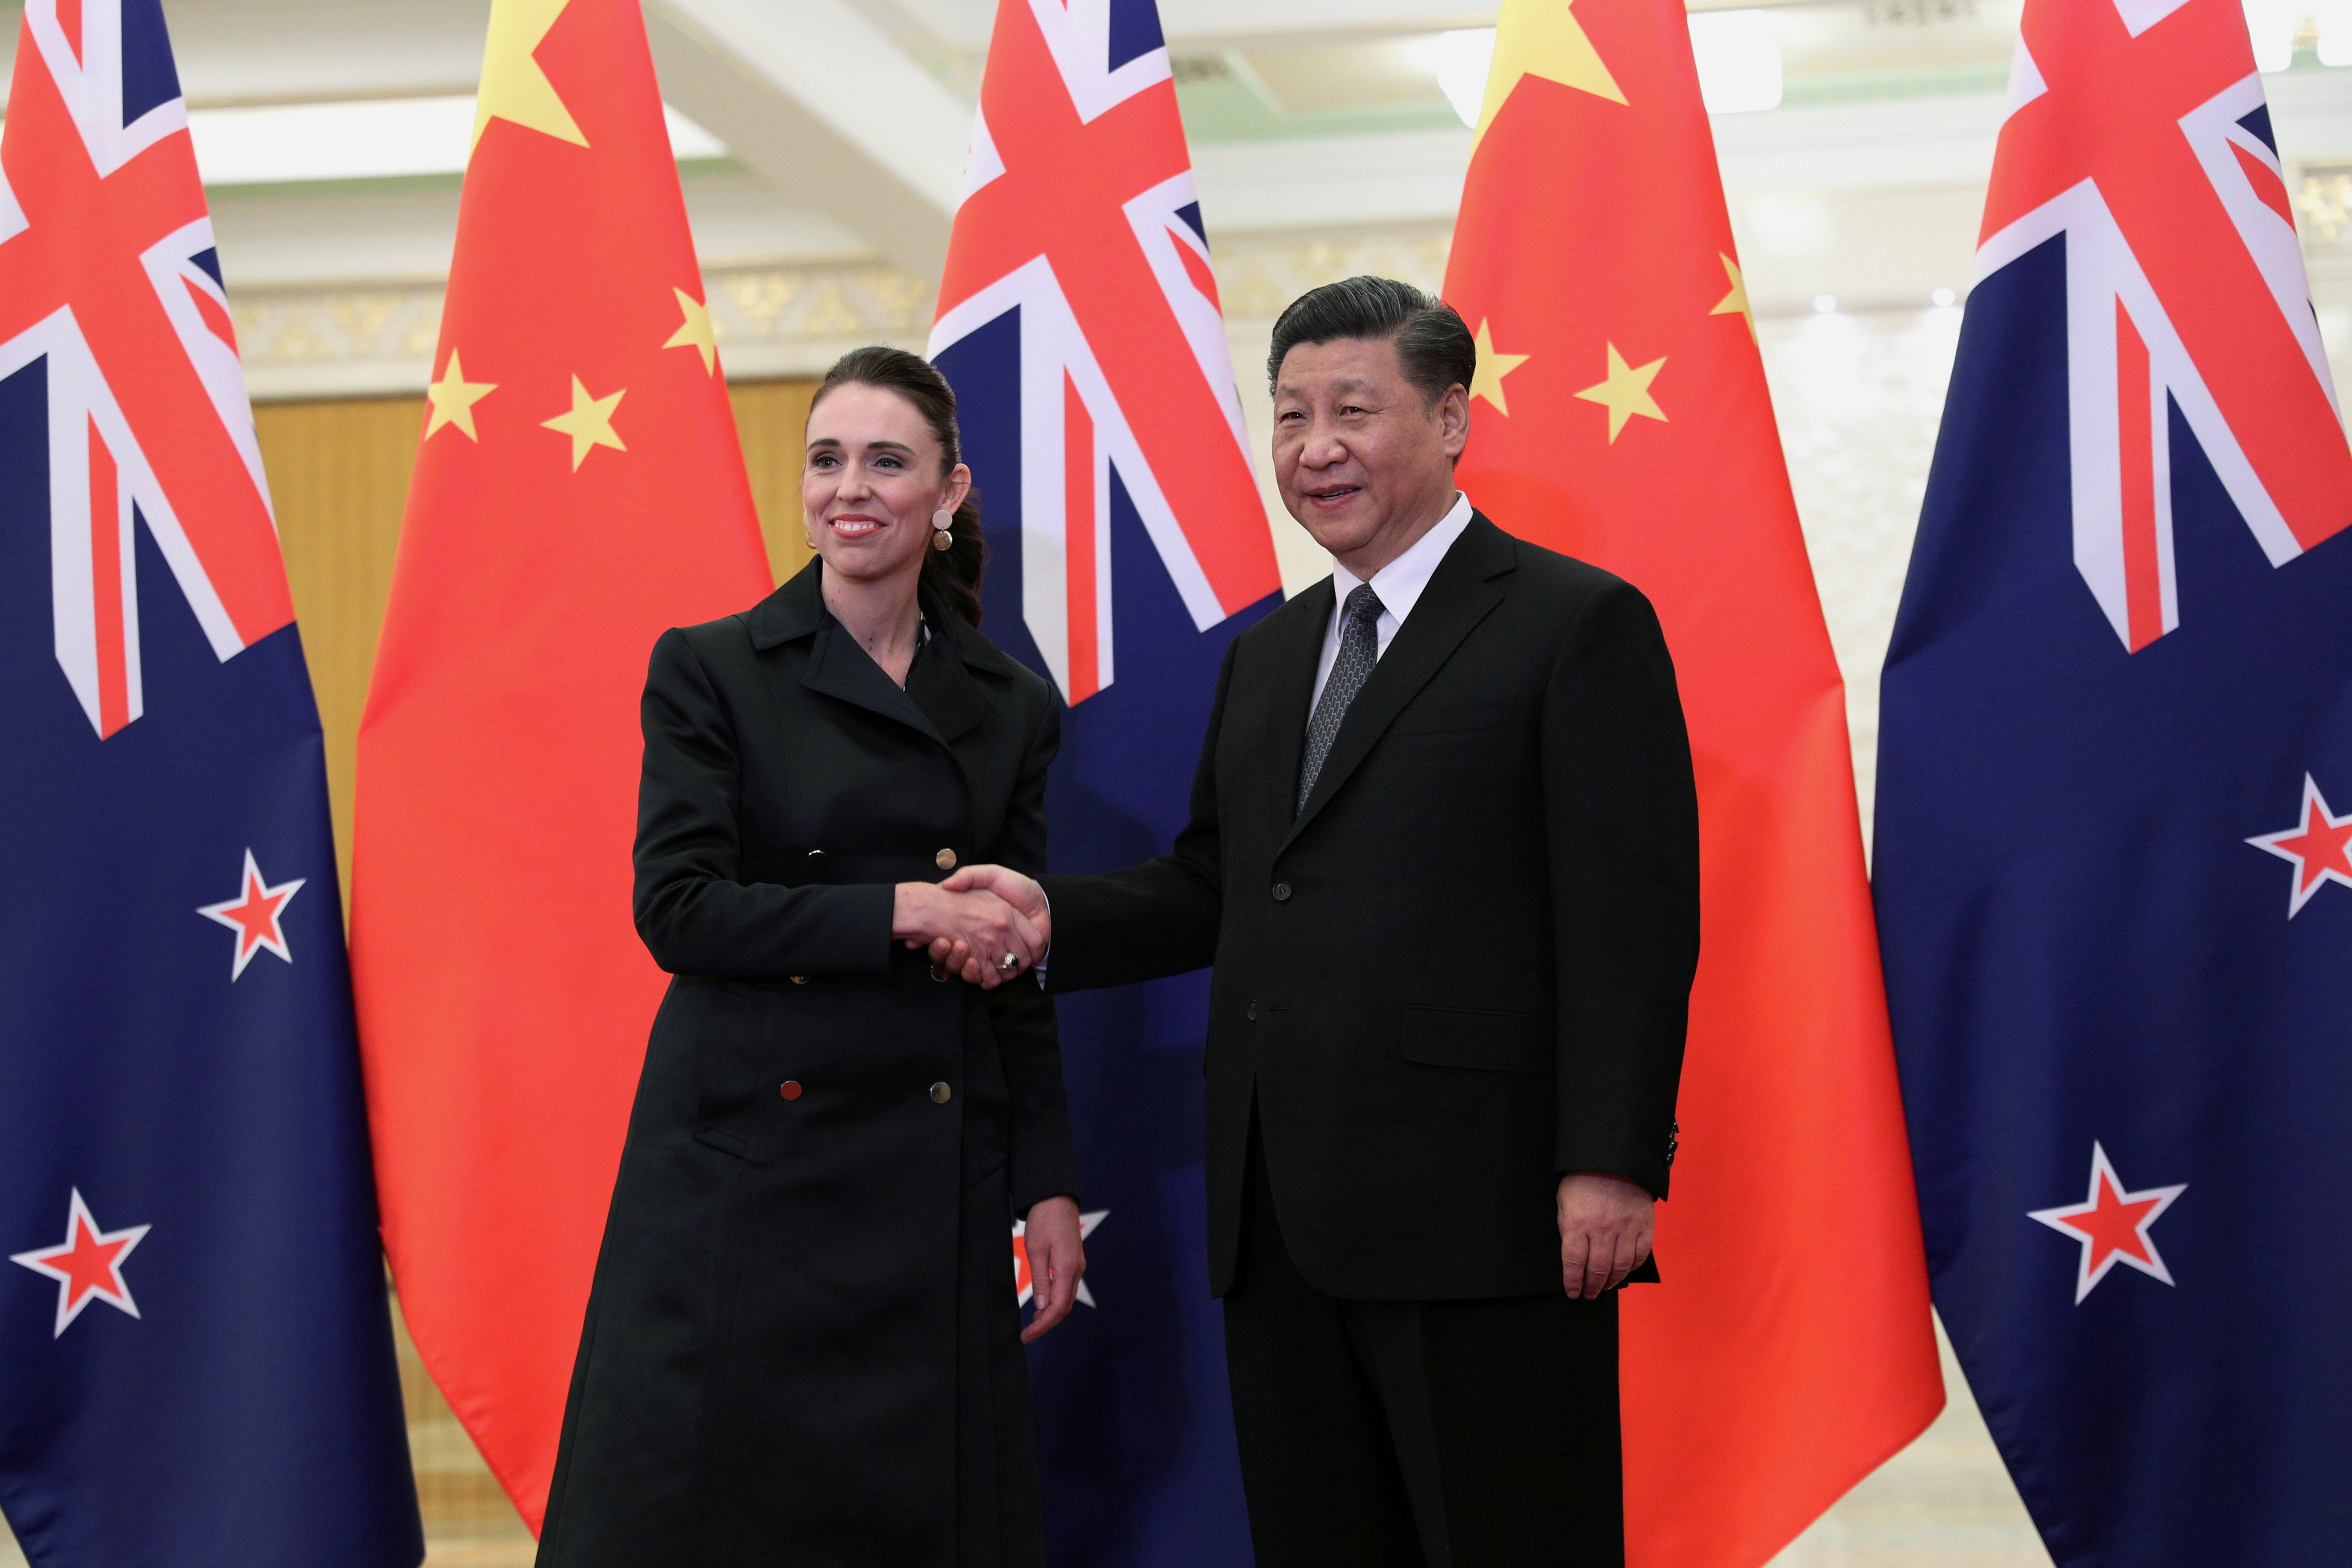 Chinese President Xi Jinping and New Zealand Prime Minister Jacinda Ardern shake hands before the meeting at the Great Hall of the People in Beijing, China April 1, 2019. Kenzaburo Fukuhara/KYODONEWS/Pool via REUTERS/